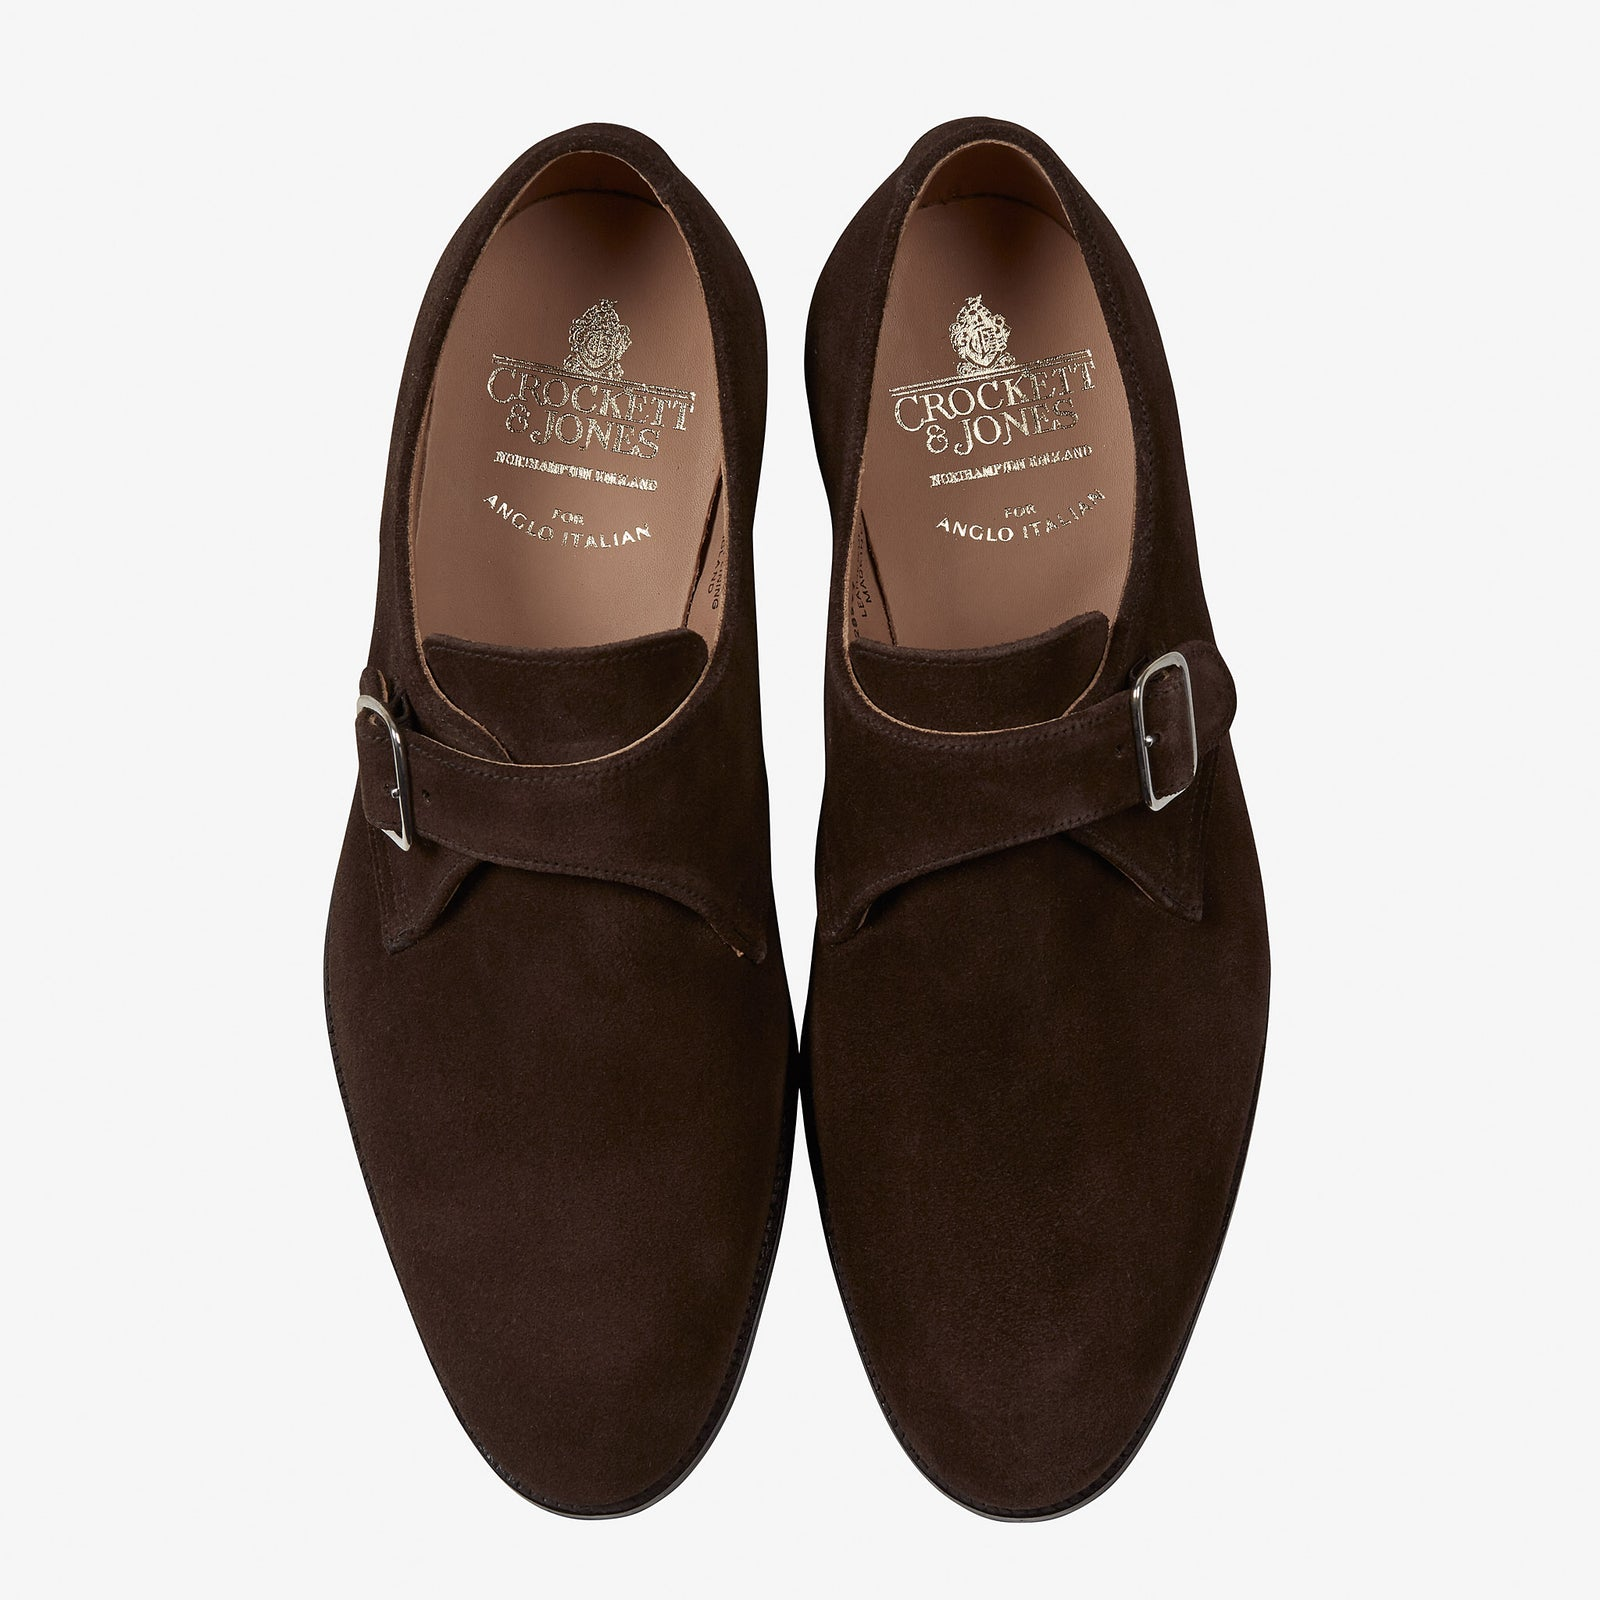 Crockett & Jones for Anglo-Italian Compton Single Monk Dark Brown Suede